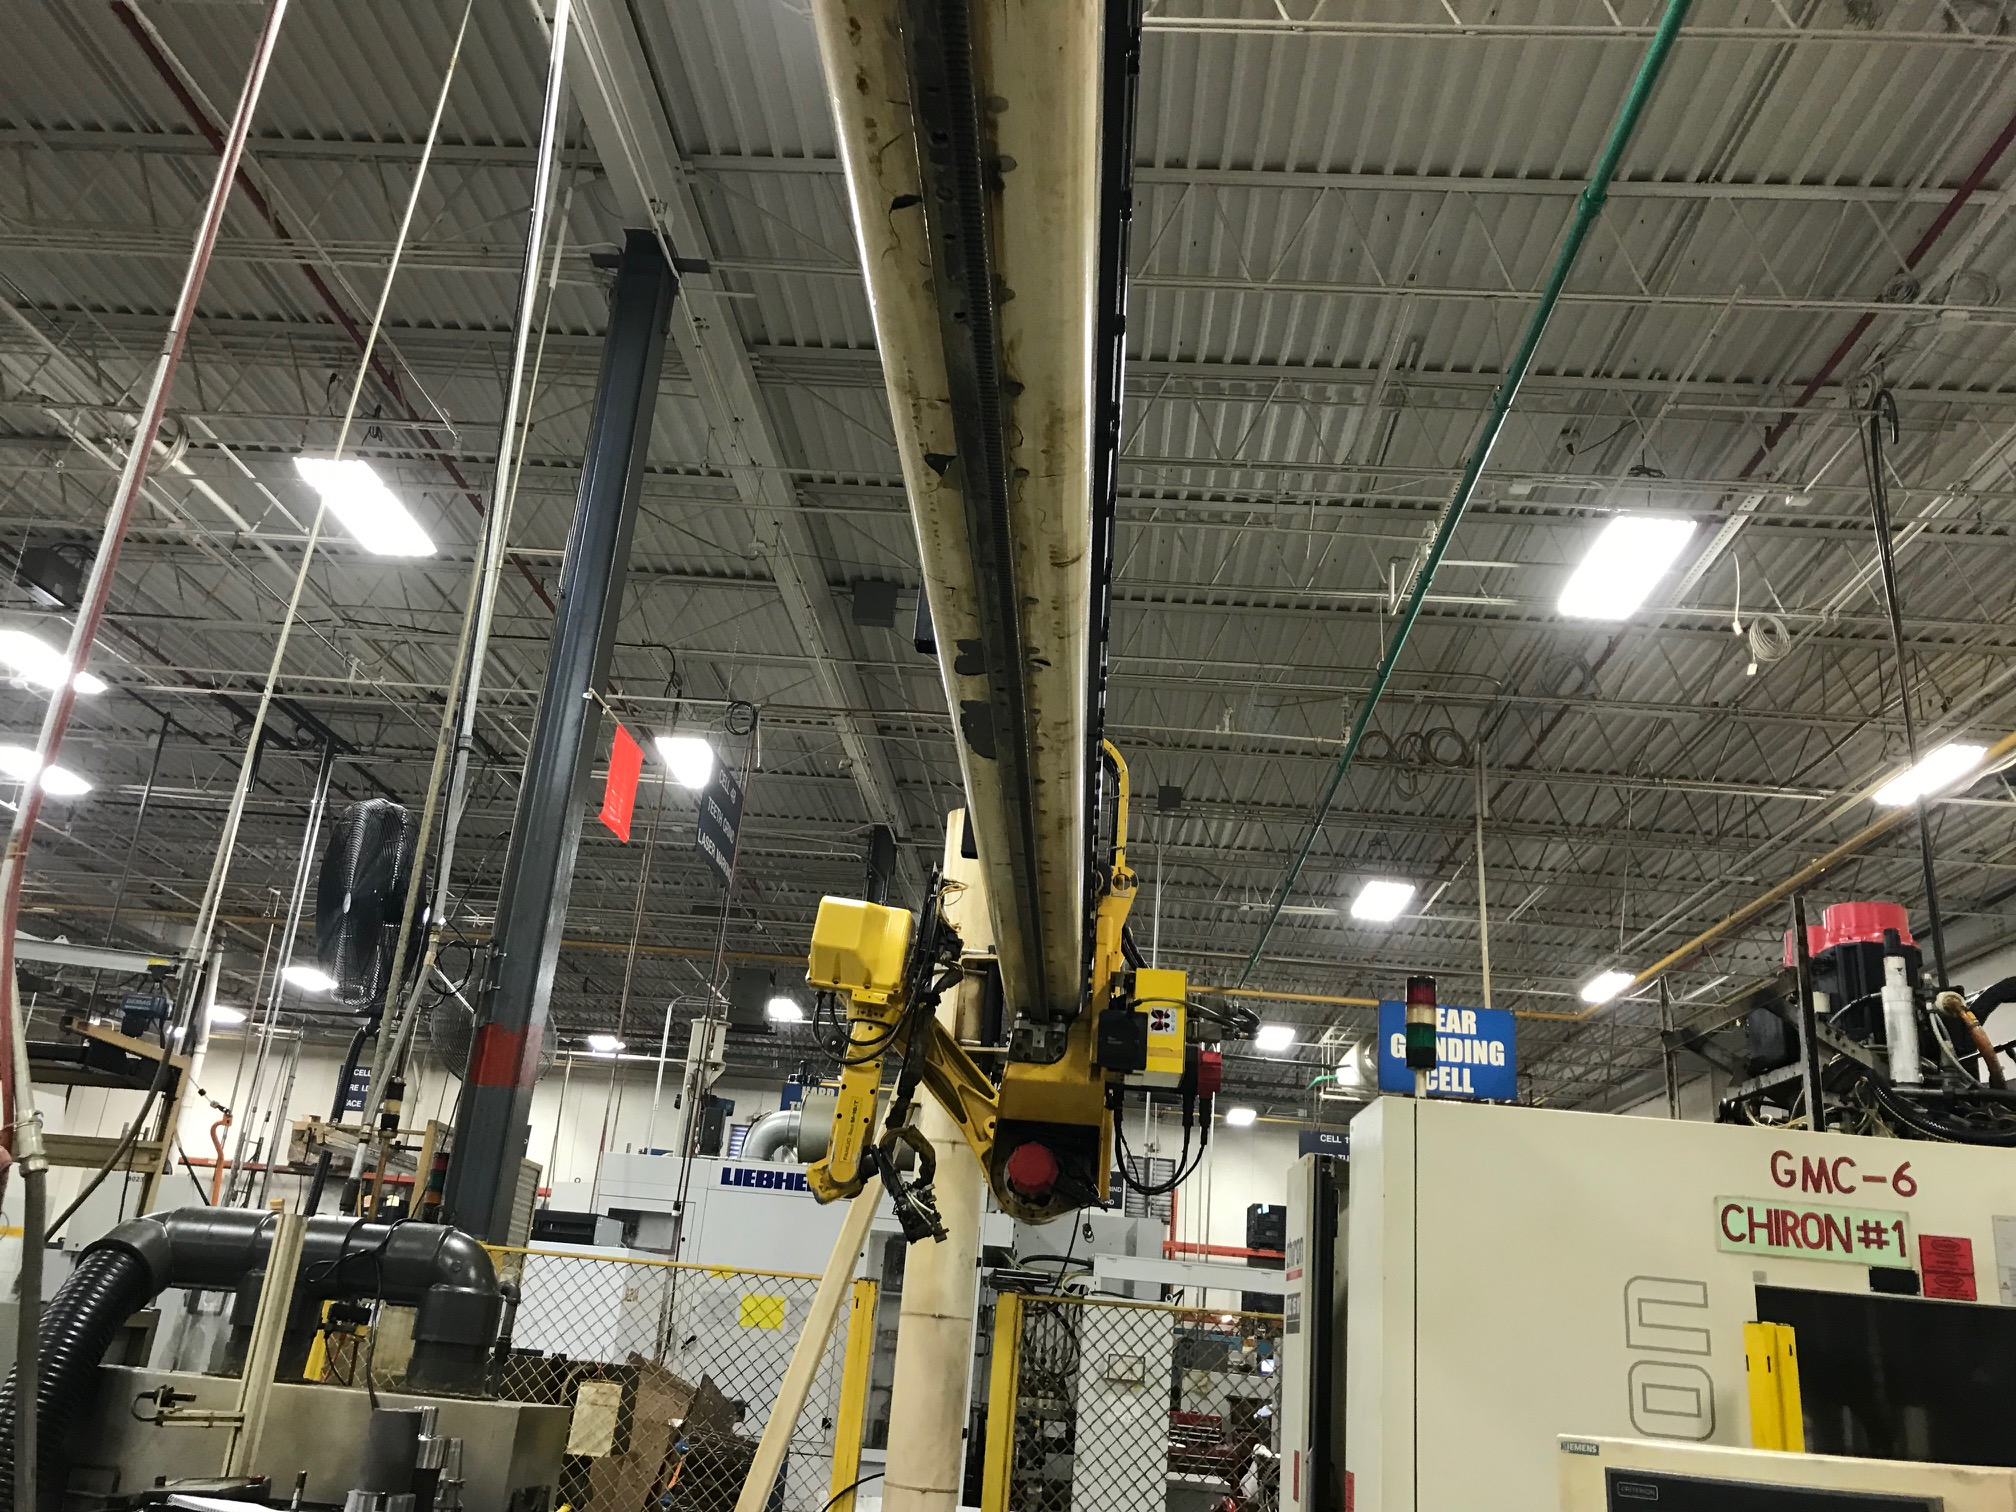 Lot 9 - FANUC GANTRY ROBOT WITH 23' RAIL, MODEL M-16IT, RJ3 CONTROL, SN E98Y0381, YEAR 11-99 LOCATION IL